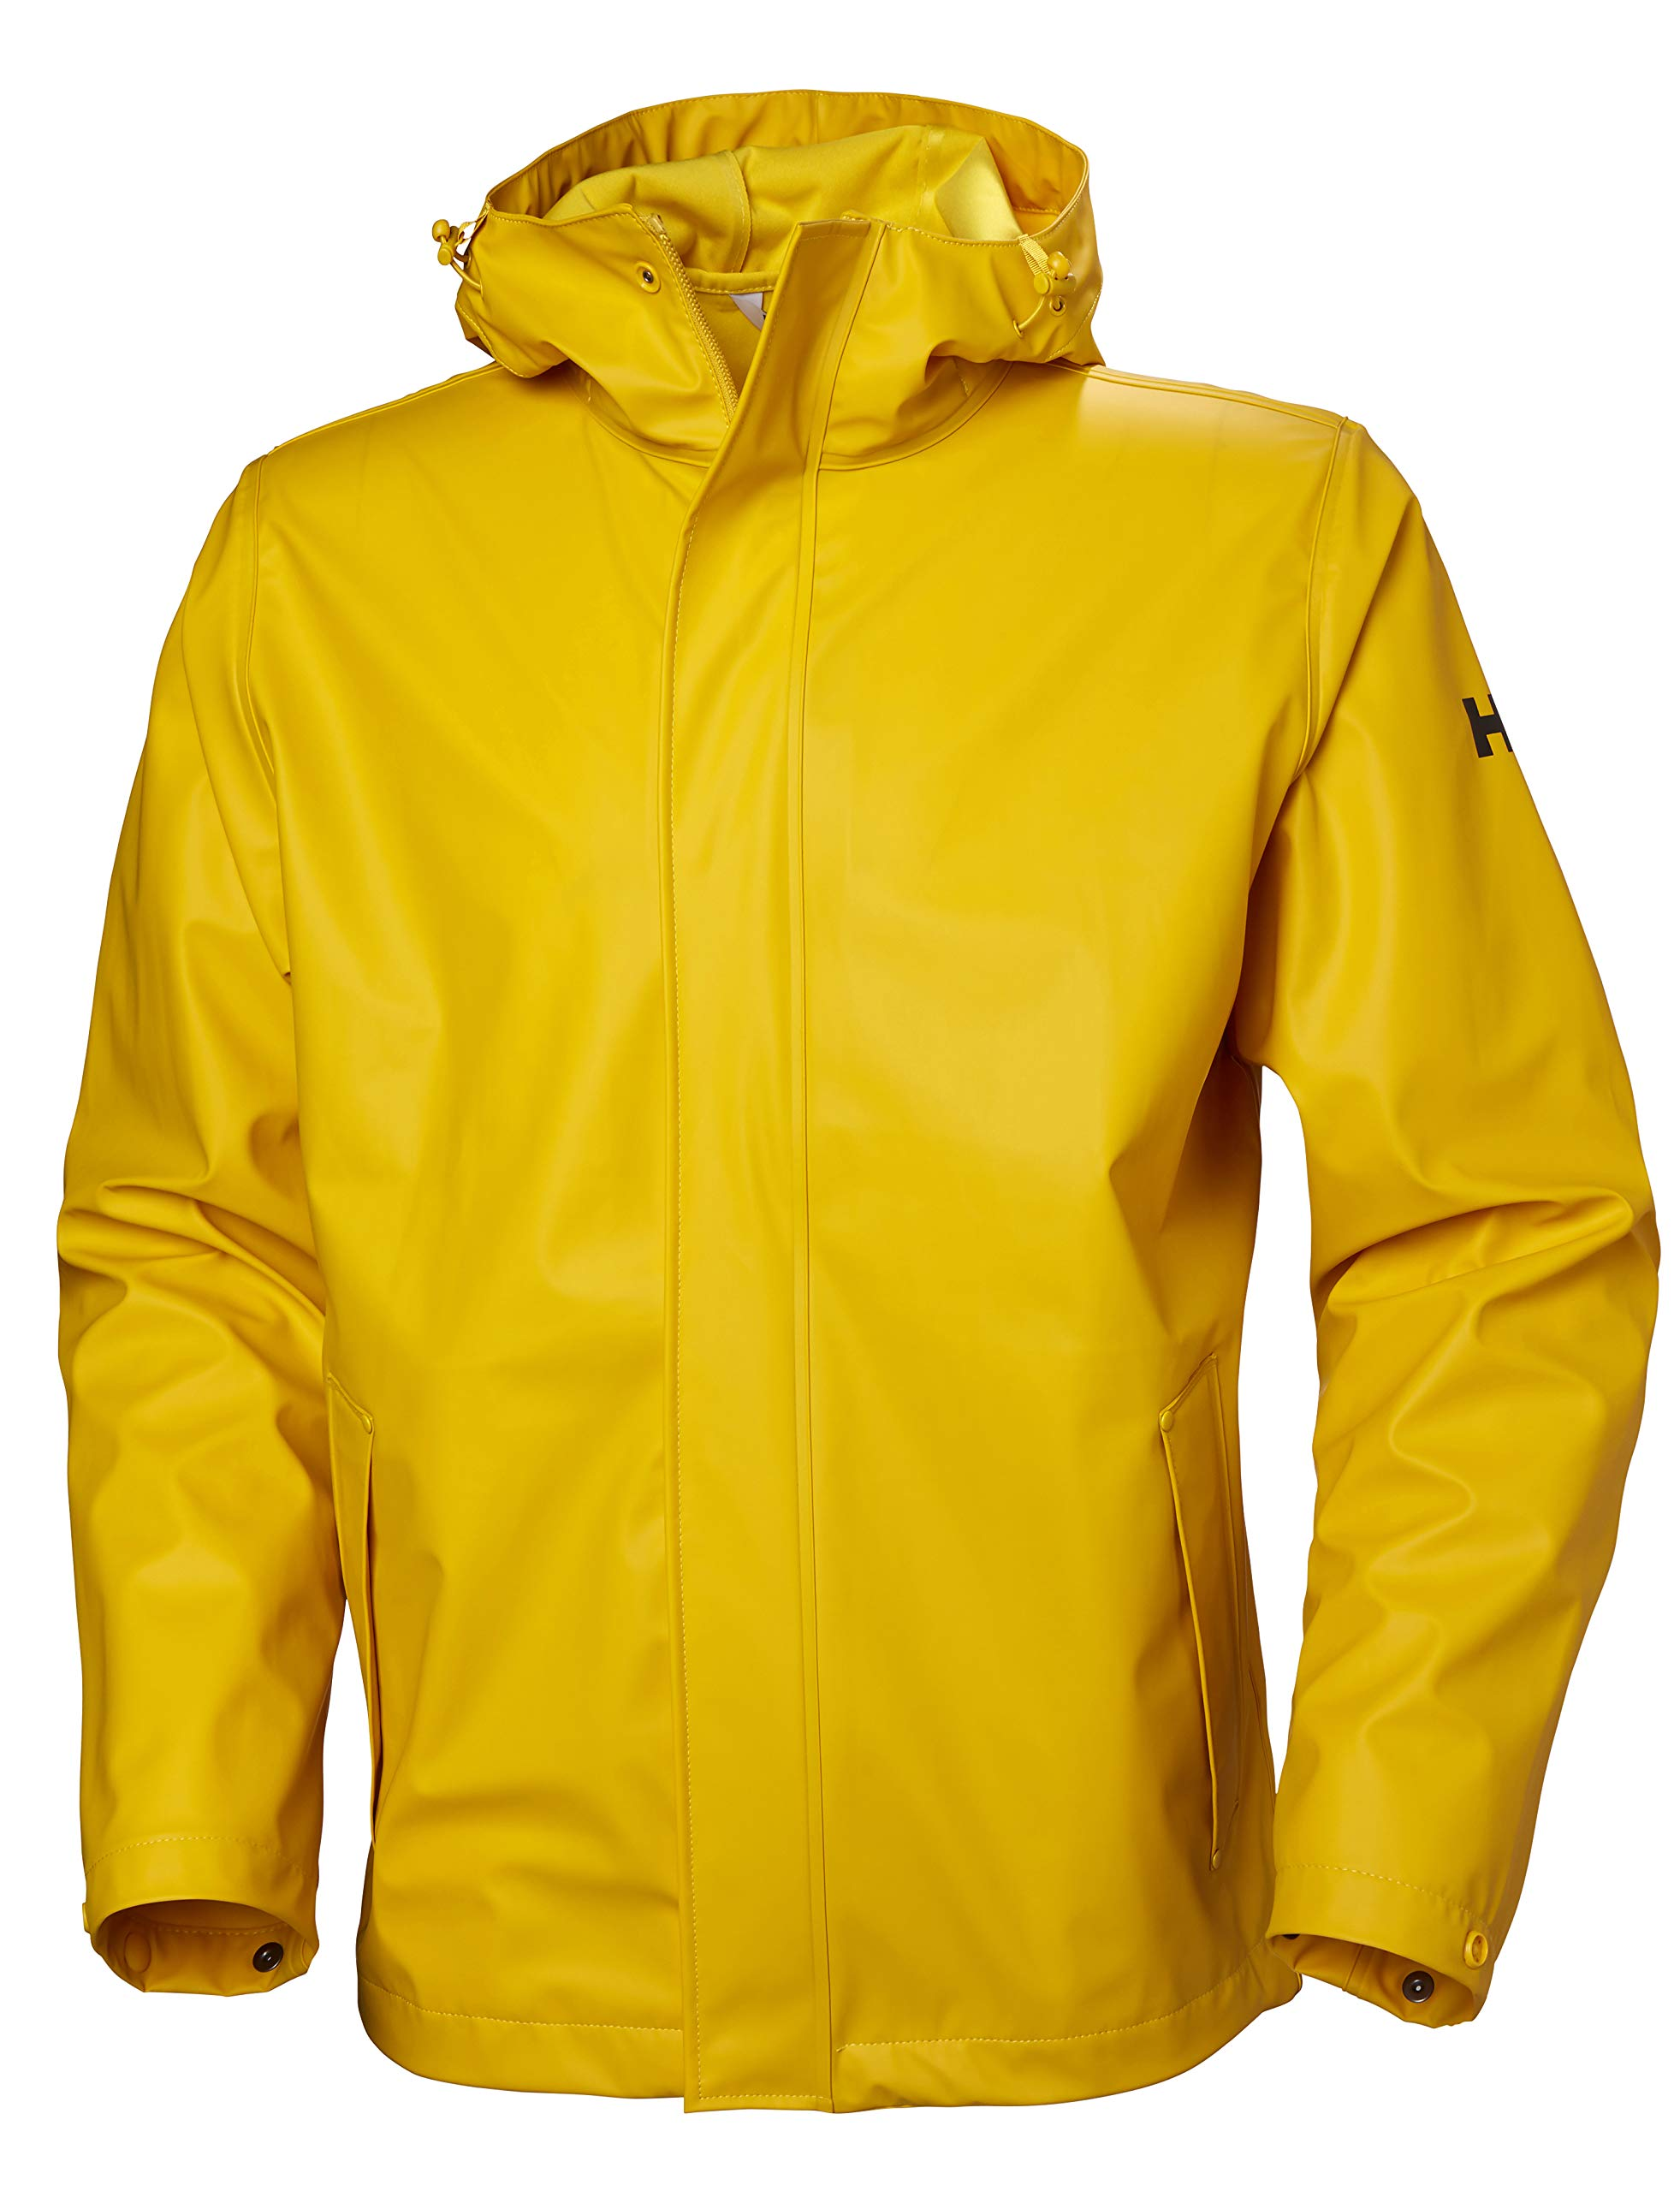 Helly Hansen Men's Moss Hooded Fully Waterproof Windproof Raincoat Jacket, 344 Essential Yellow, Large by Helly Hansen